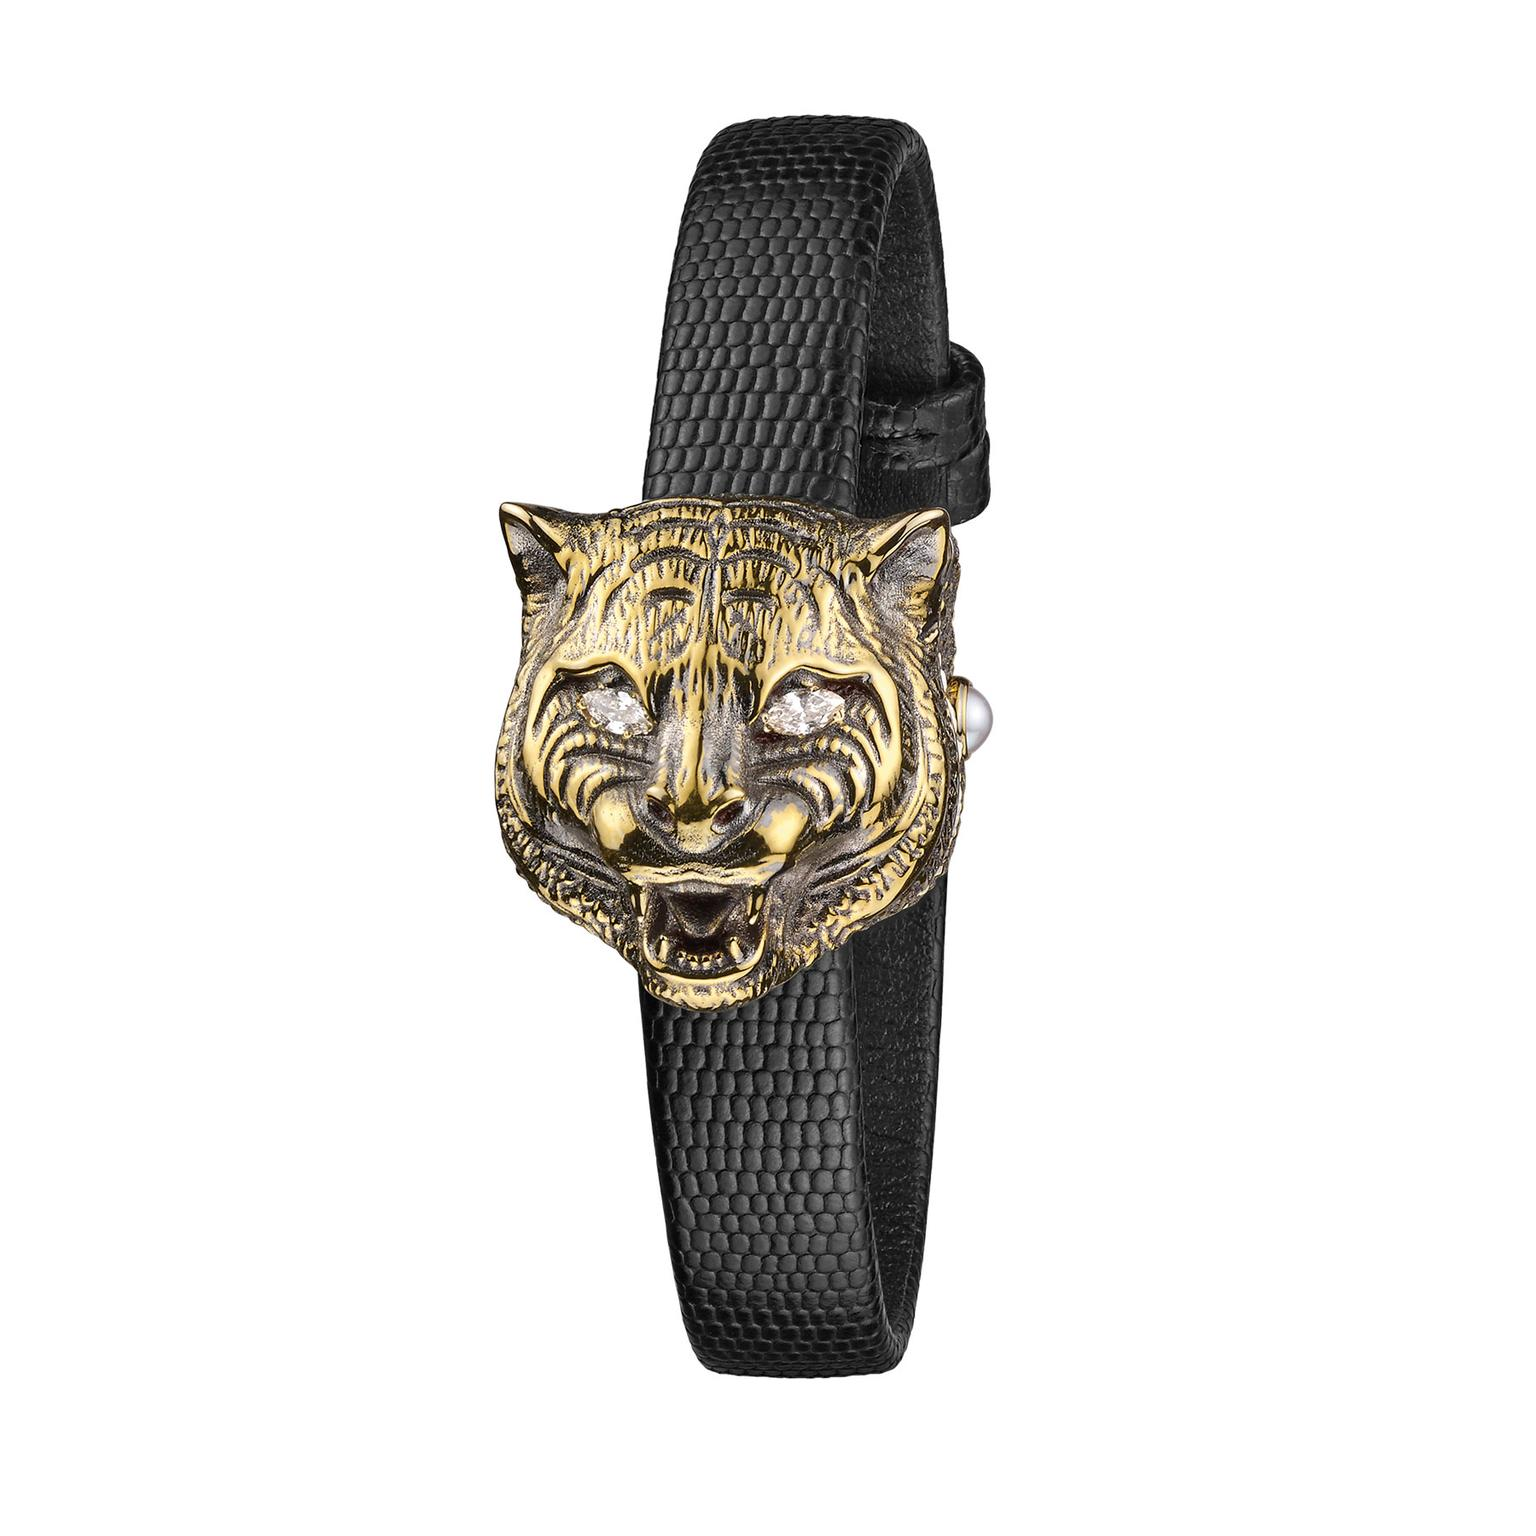 Gucci Le Marché des Merveilles yellow gold secret watch